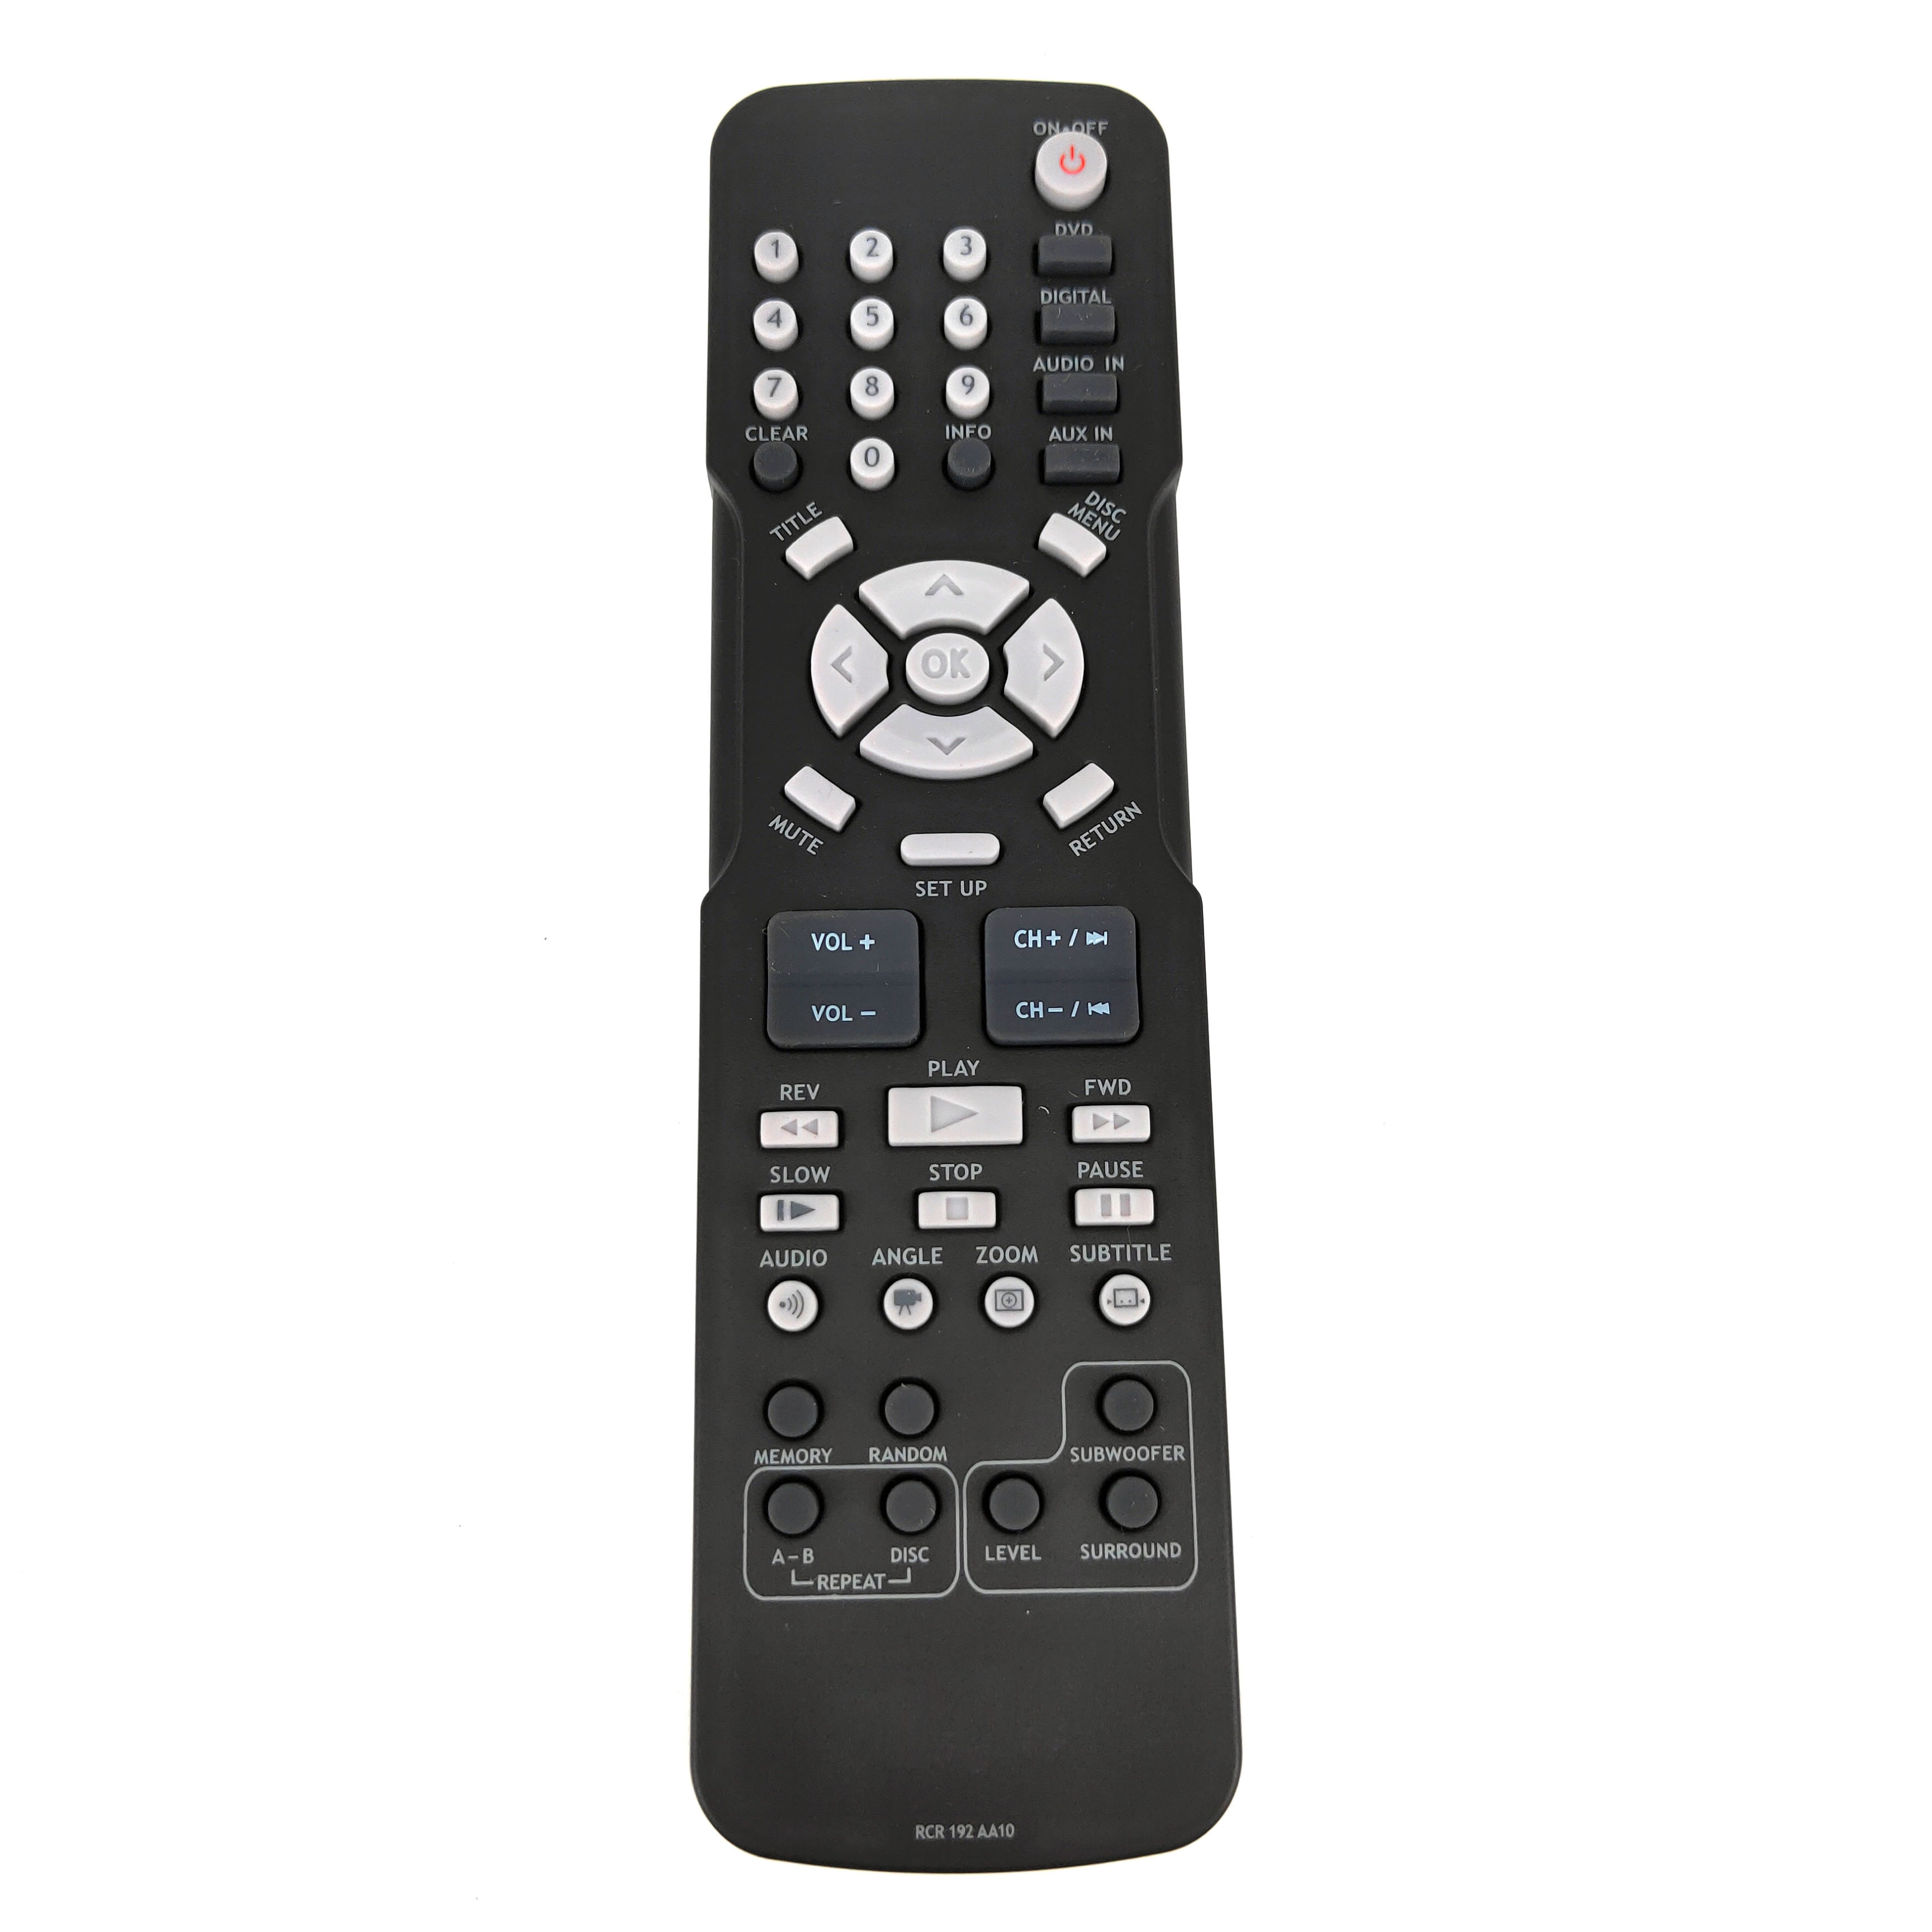 RCR192AA10 for RCA Home Theater DVD Remote Control for RTD3131 RTD3133 1RTD3133 RTD3136 Fernbedienung